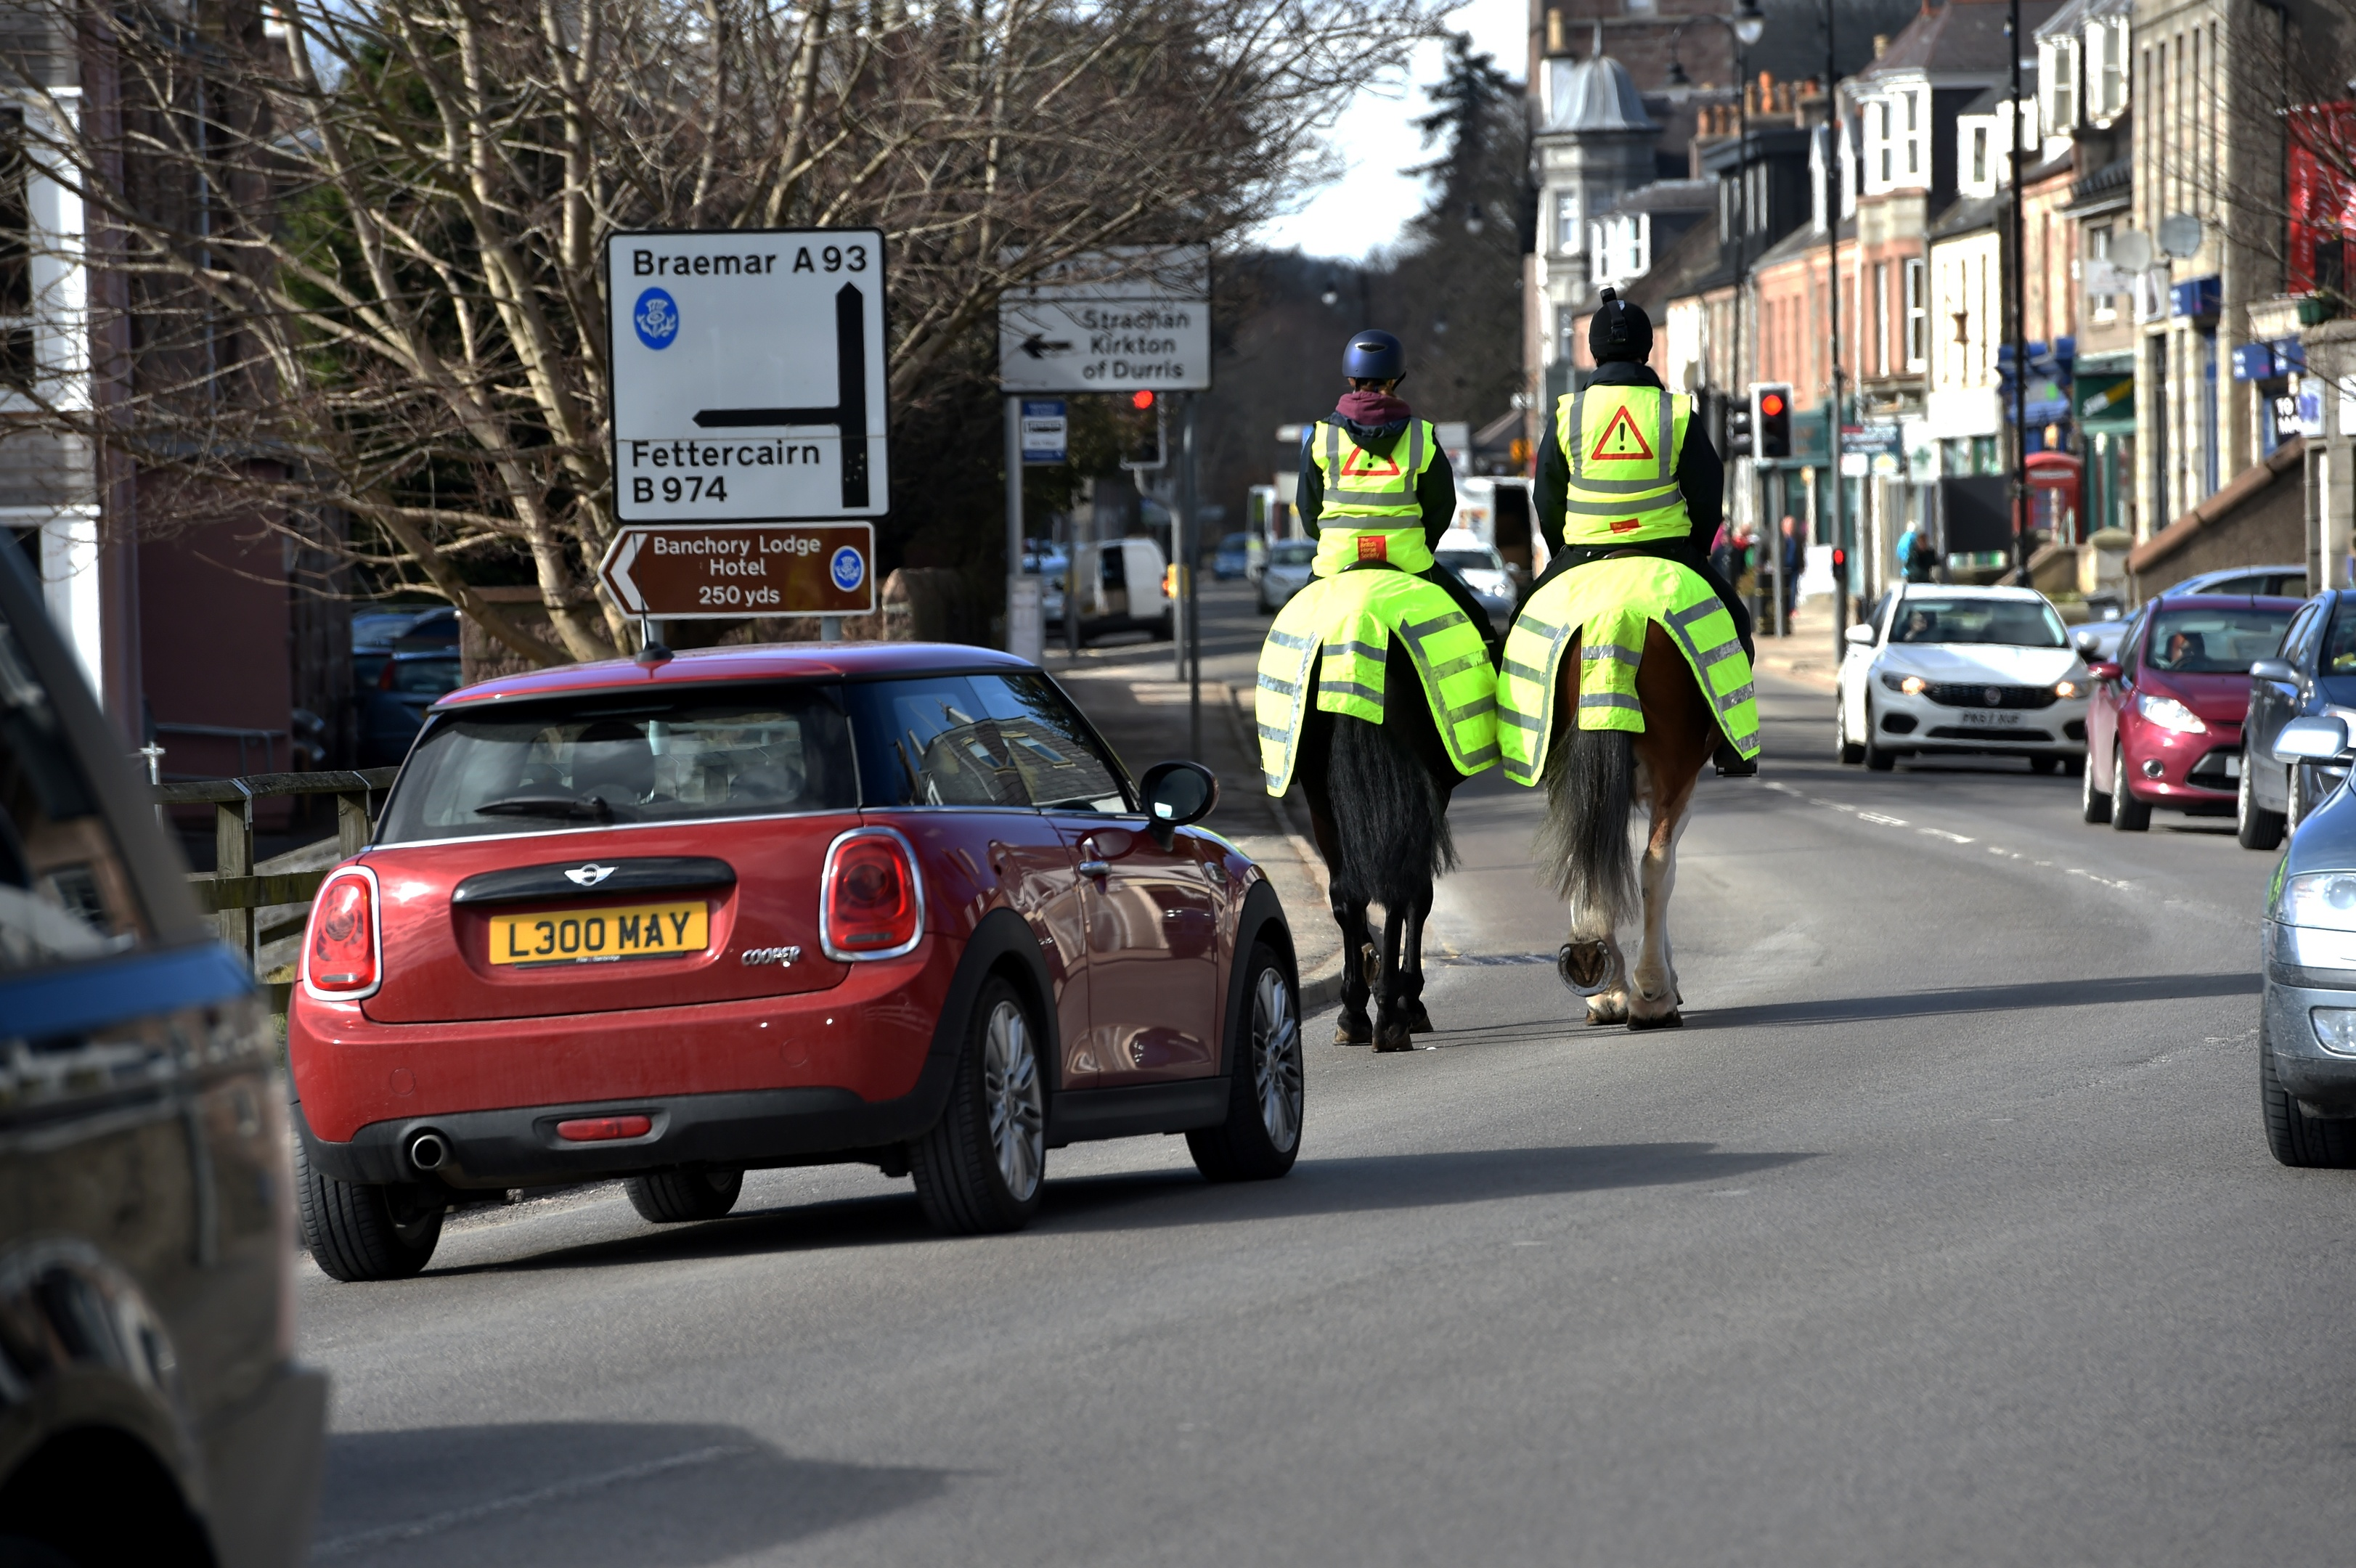 Police Scotland rode through Banchory undercover to see how drivers reacted when passing horses on the road. Many were stopped and warned of their driving if either too close, or driving fast past them. Police officers Simon Wilson and Jennifer Weir on their horses Stewarton and Lewis. Picture by COLIN RENNIE  March 20, 2018.